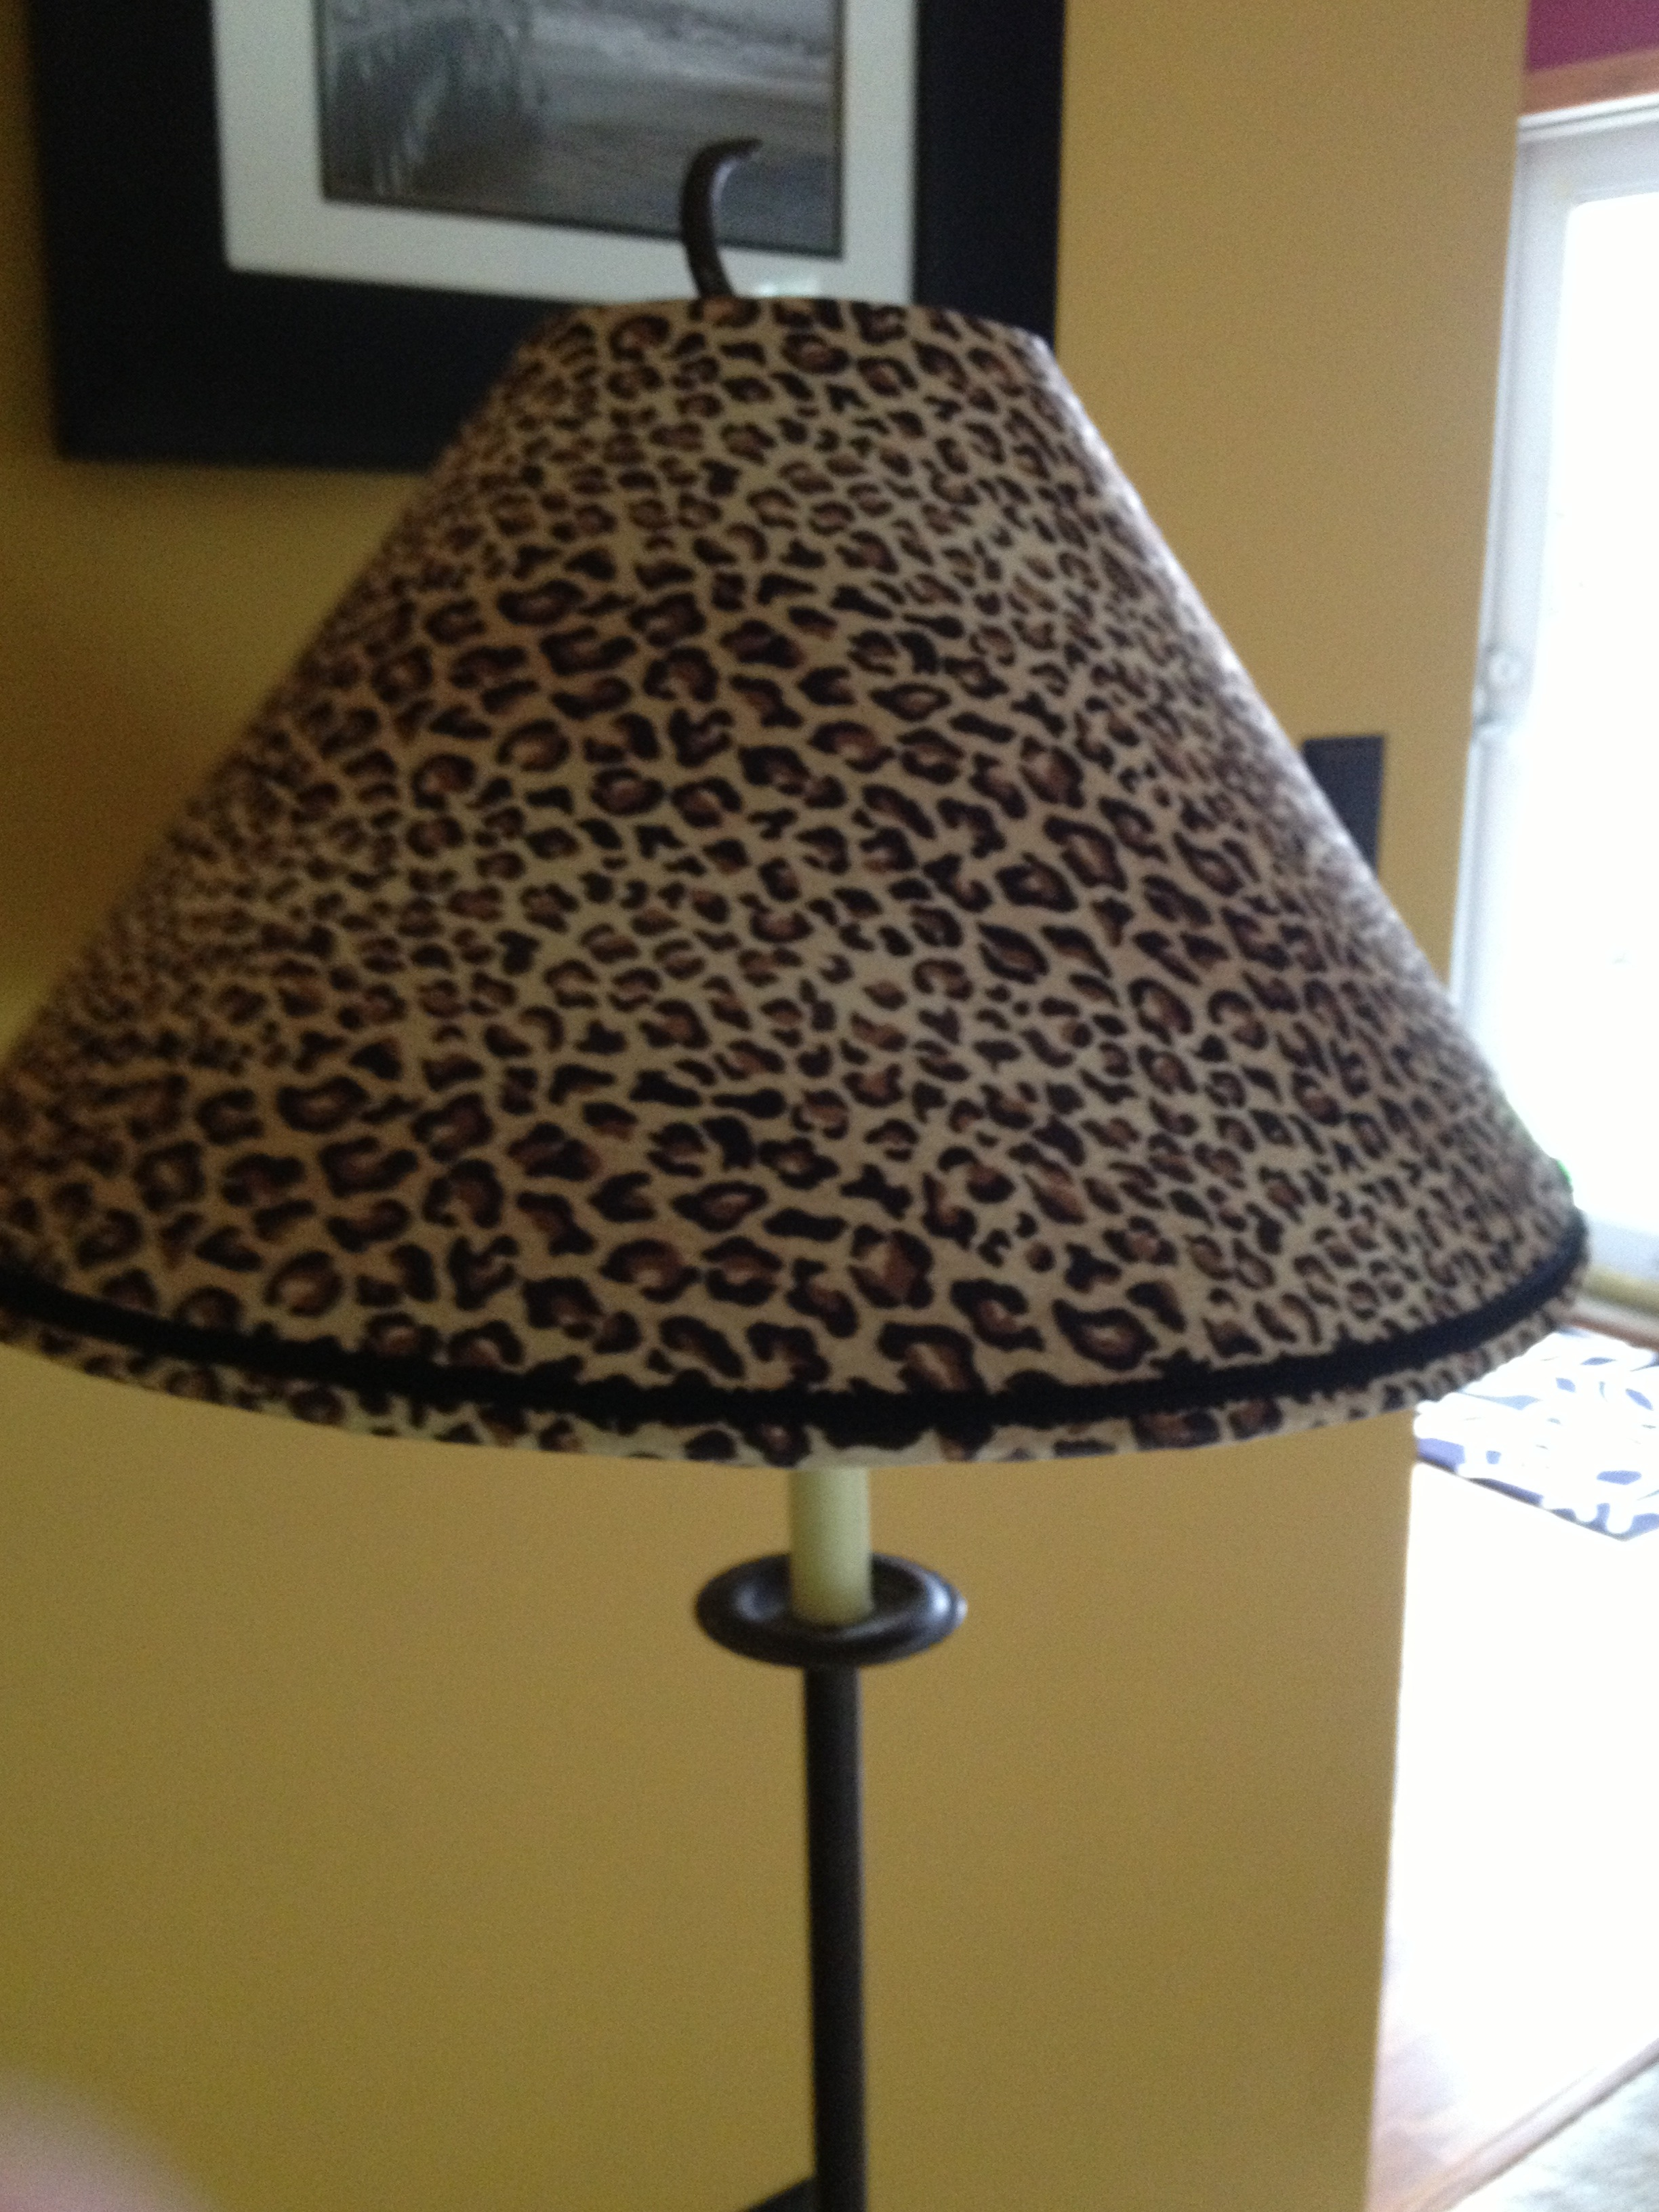 Picture of How to Make a Bad Lampshade